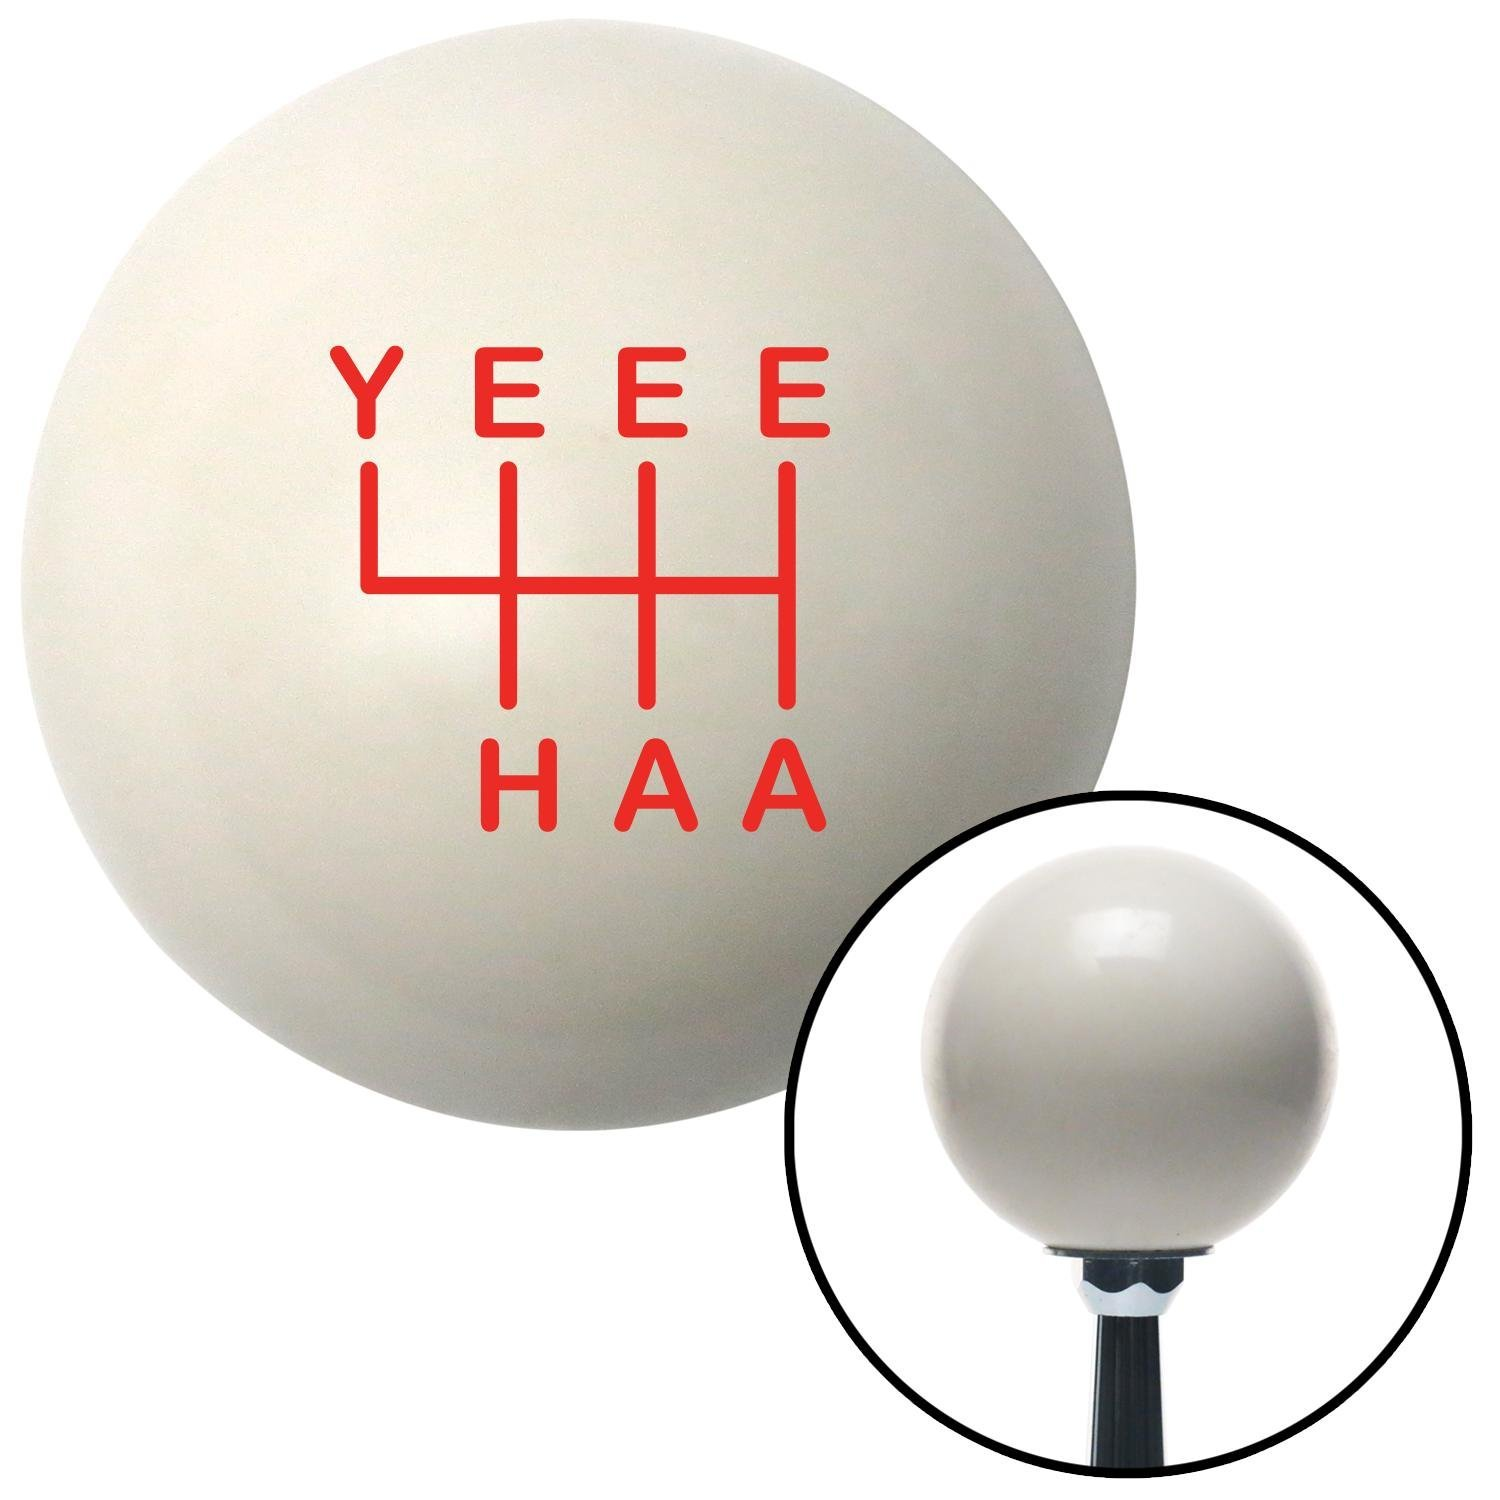 American Shifter 301313 Shift Knob Red YeeeHaa 6 Speed Ivory